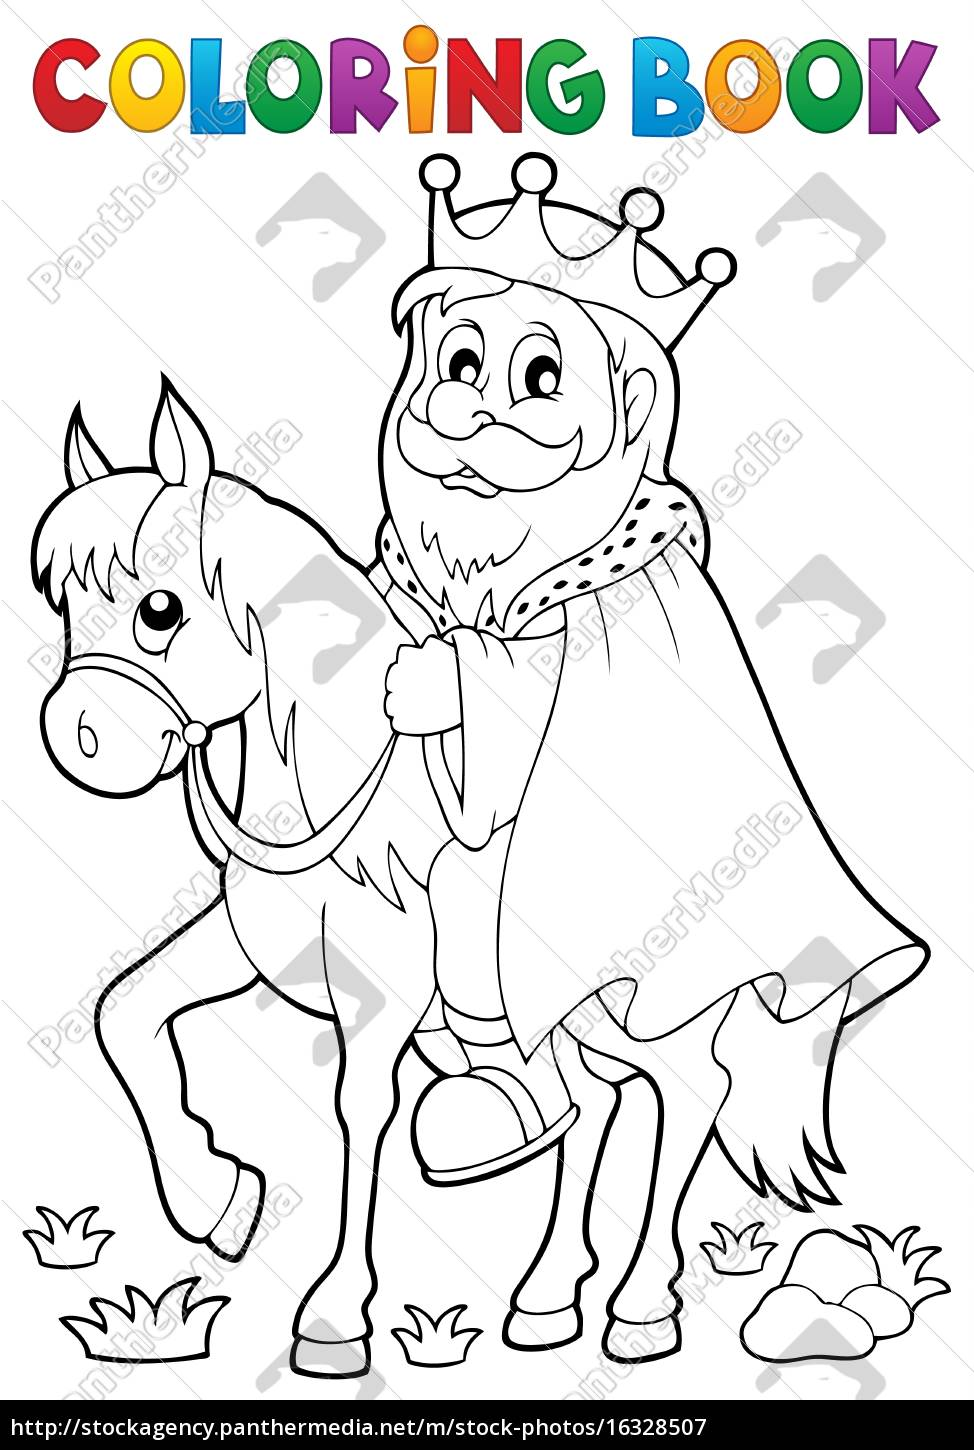 coloring, book, king, on, horse, theme - 16328507